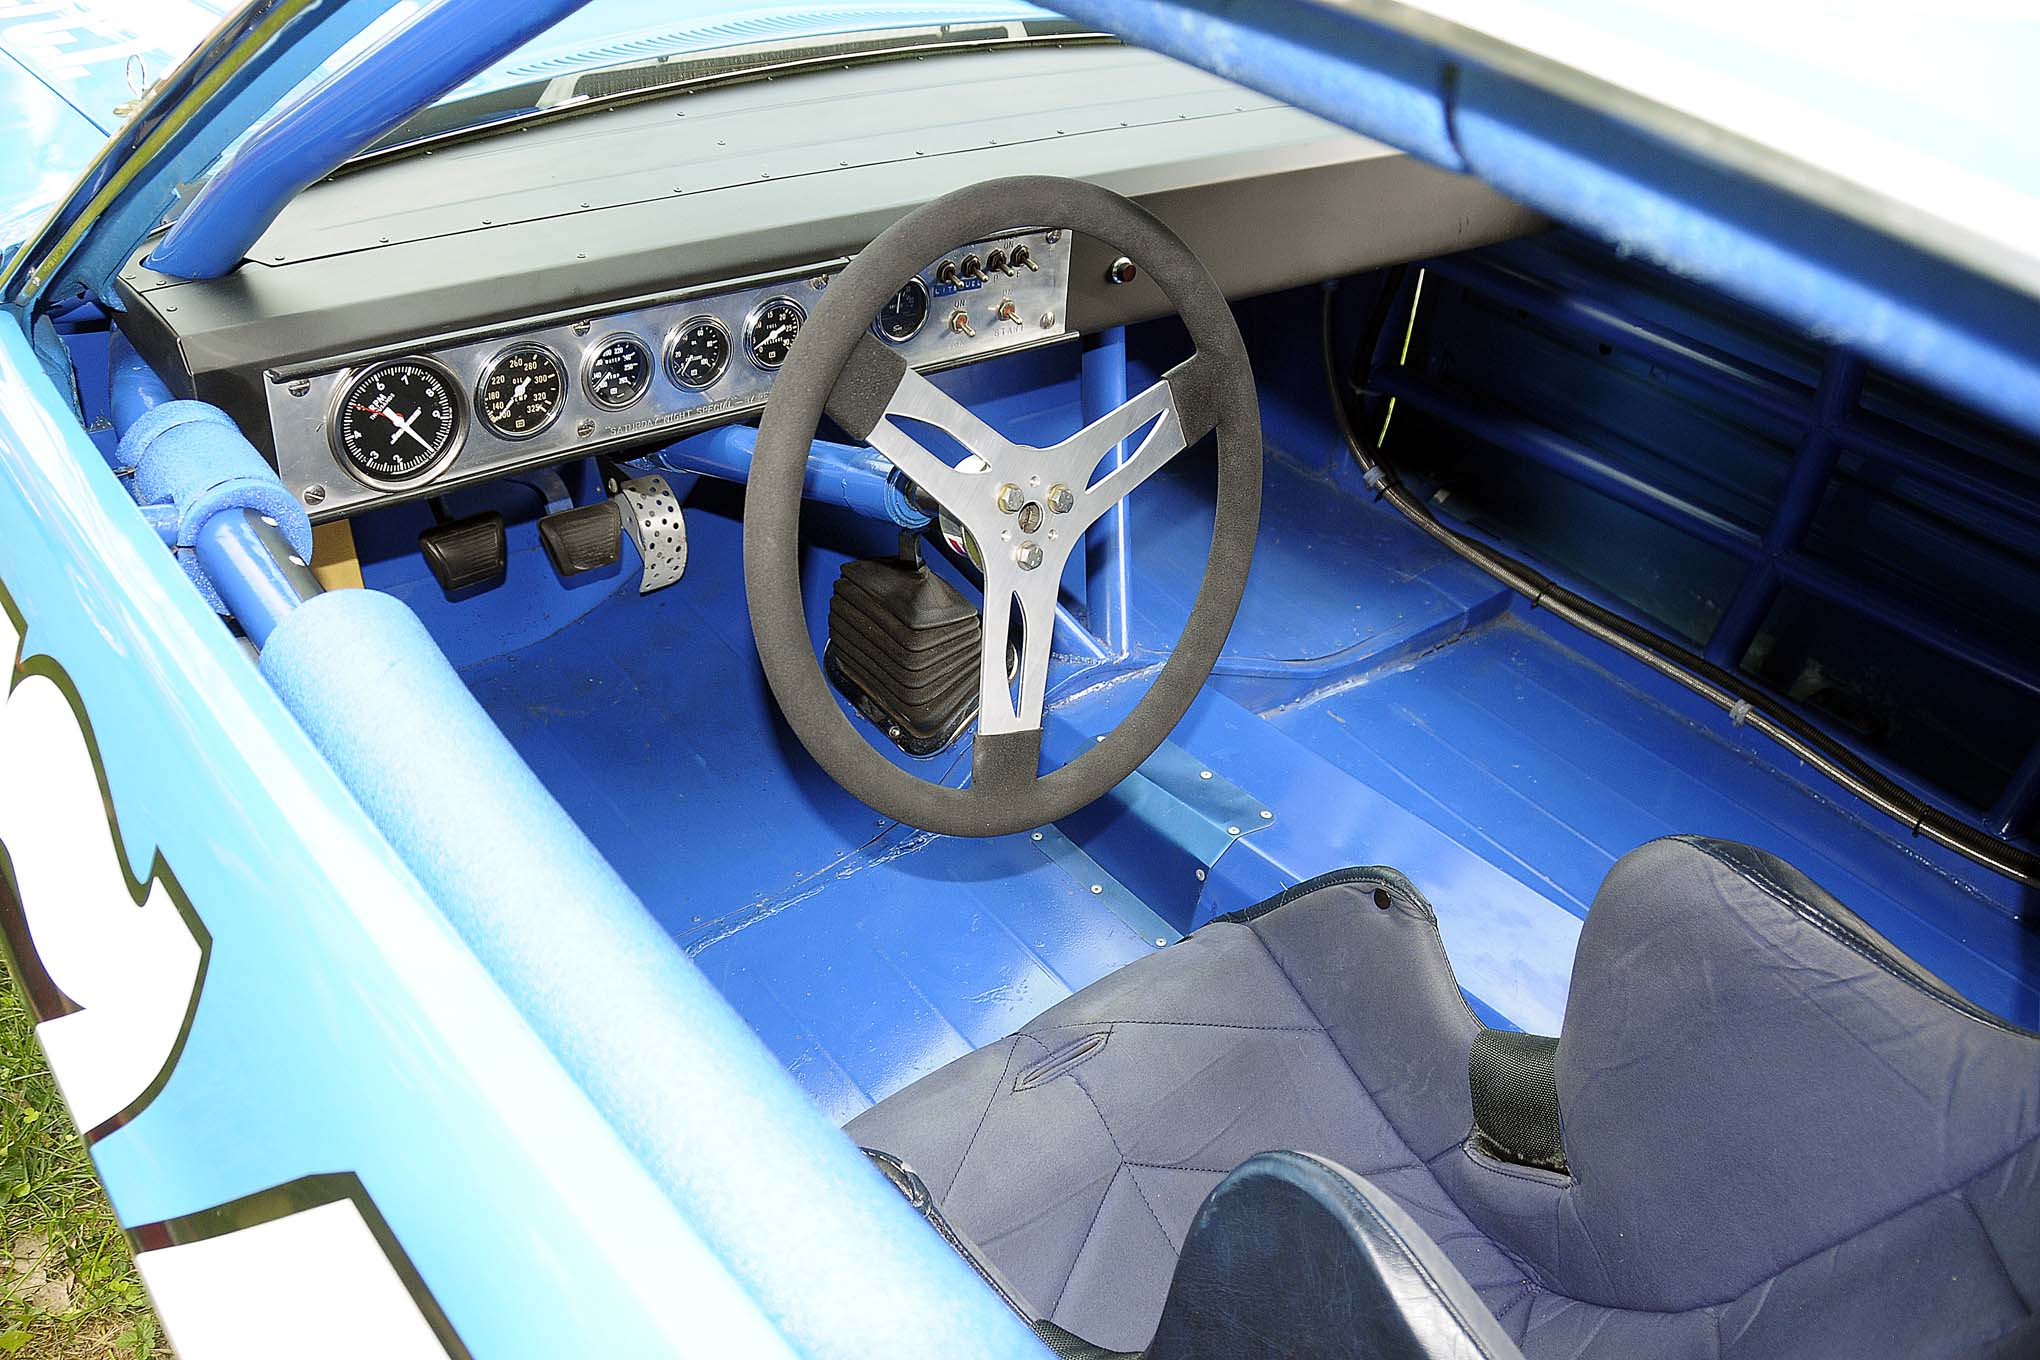 This view of the simple interior shows a steel floor and a complete lack of interior door panels.